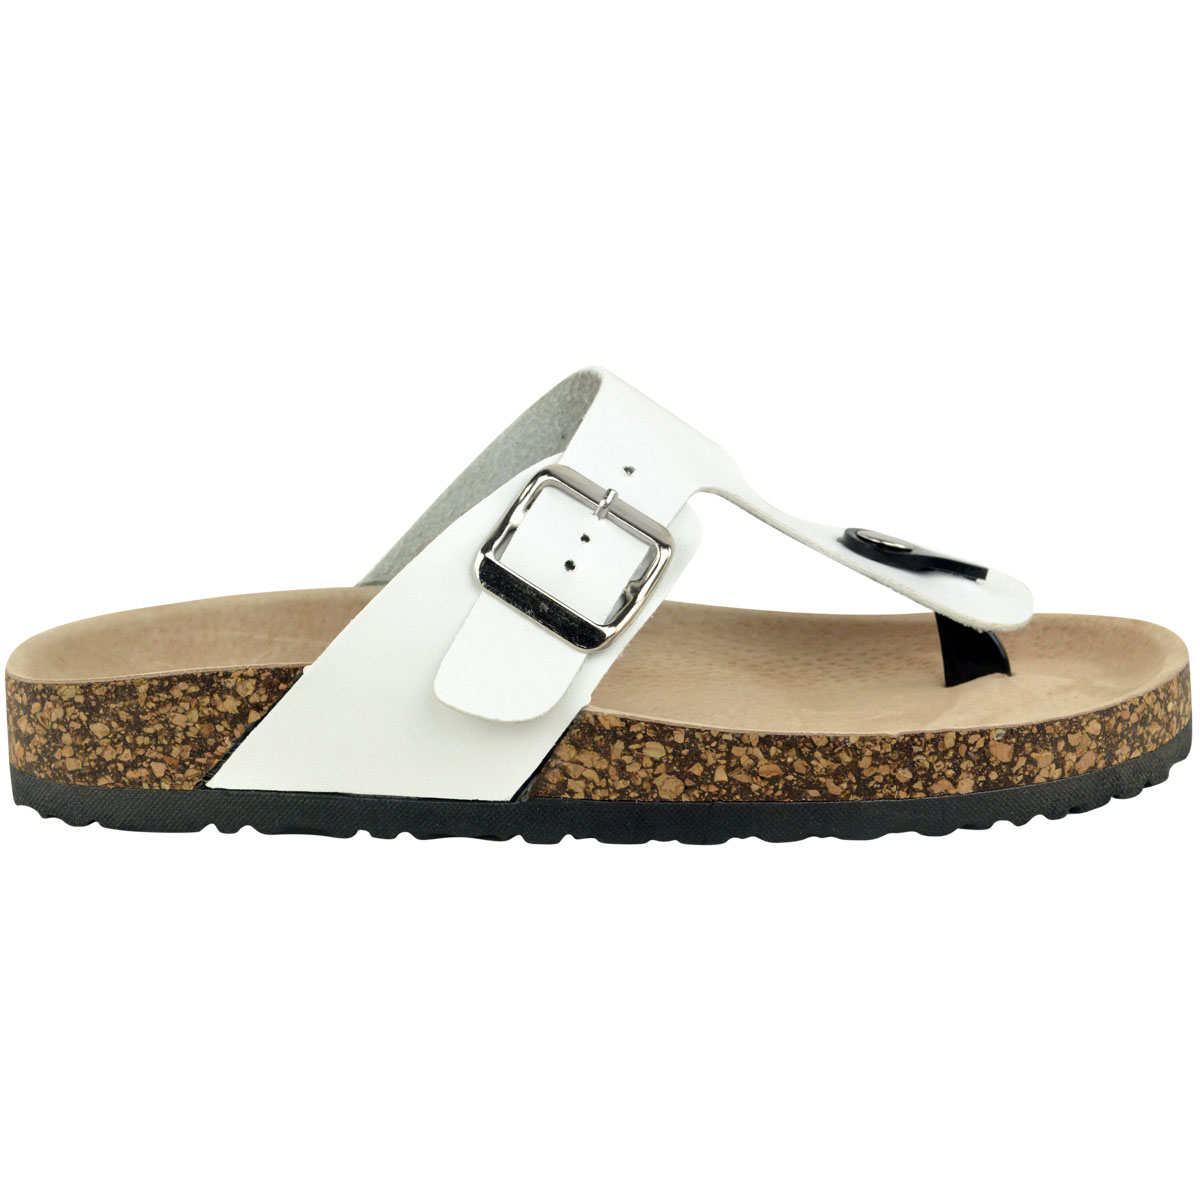 Brilliant  Sandals Beach Shoes For Woman 921in Women39s Sandals From Shoes On